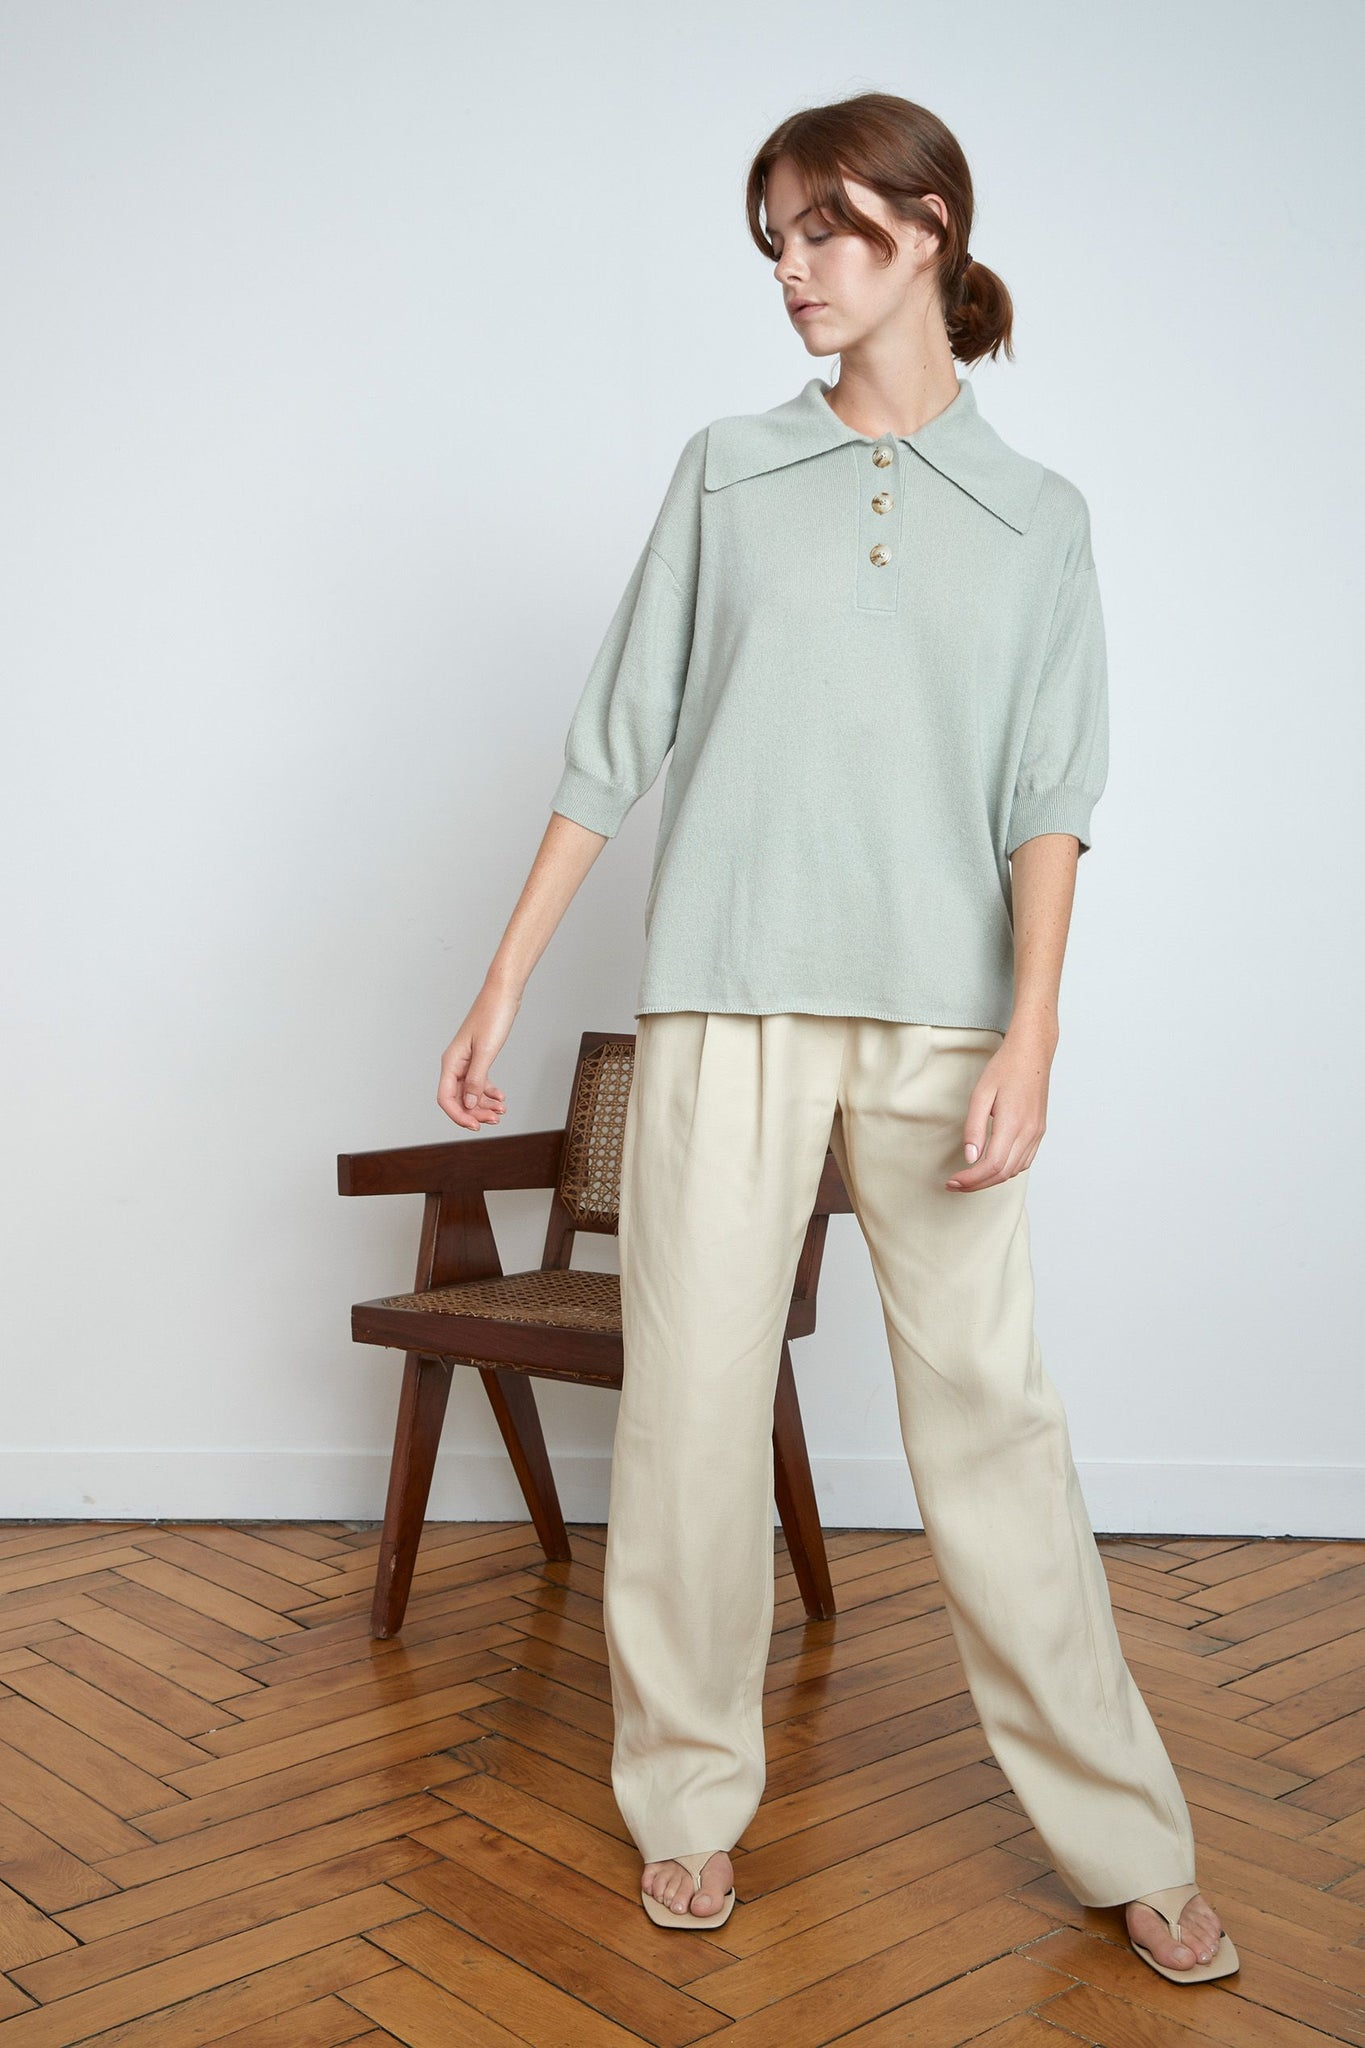 SAZILEY CASHMERE POLO BY LOULOU STUDIO IN ALMOND